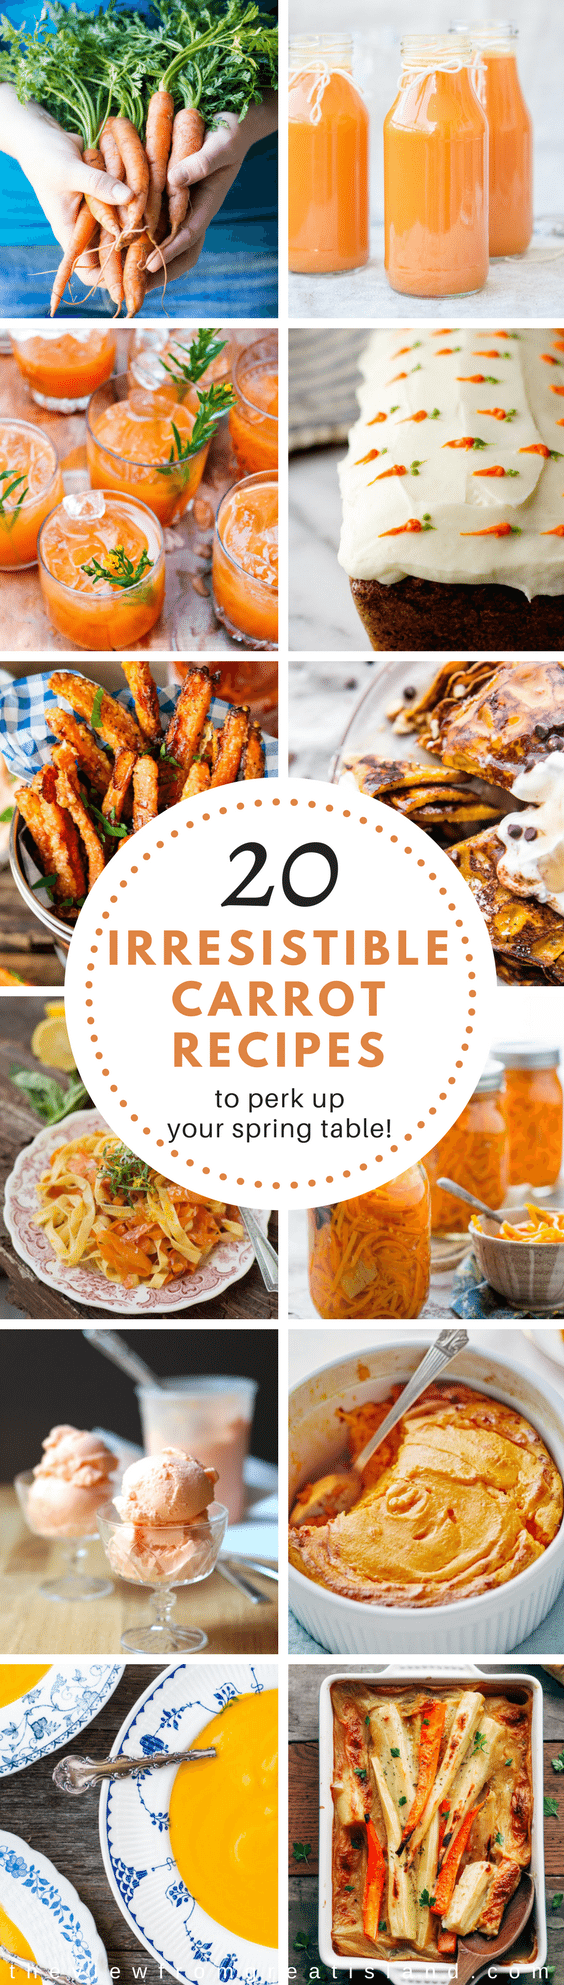 20 Yummy Carrot Recipes to Nibble on This Month ~ the focus is on carrots today with vibrant recipes ideal for Easter, Passover, Mother's Day, and beyond. #carrots #Easterrecipe #passoverrecipe #mothersdayrecipe #carrotcocktail #carrotsoup #carrotcake #carrotcupcakes #carrotjuice #carrotshrumb #roastedcarrots #carrotsouffle #carrotpasta #spiralizedcarrots